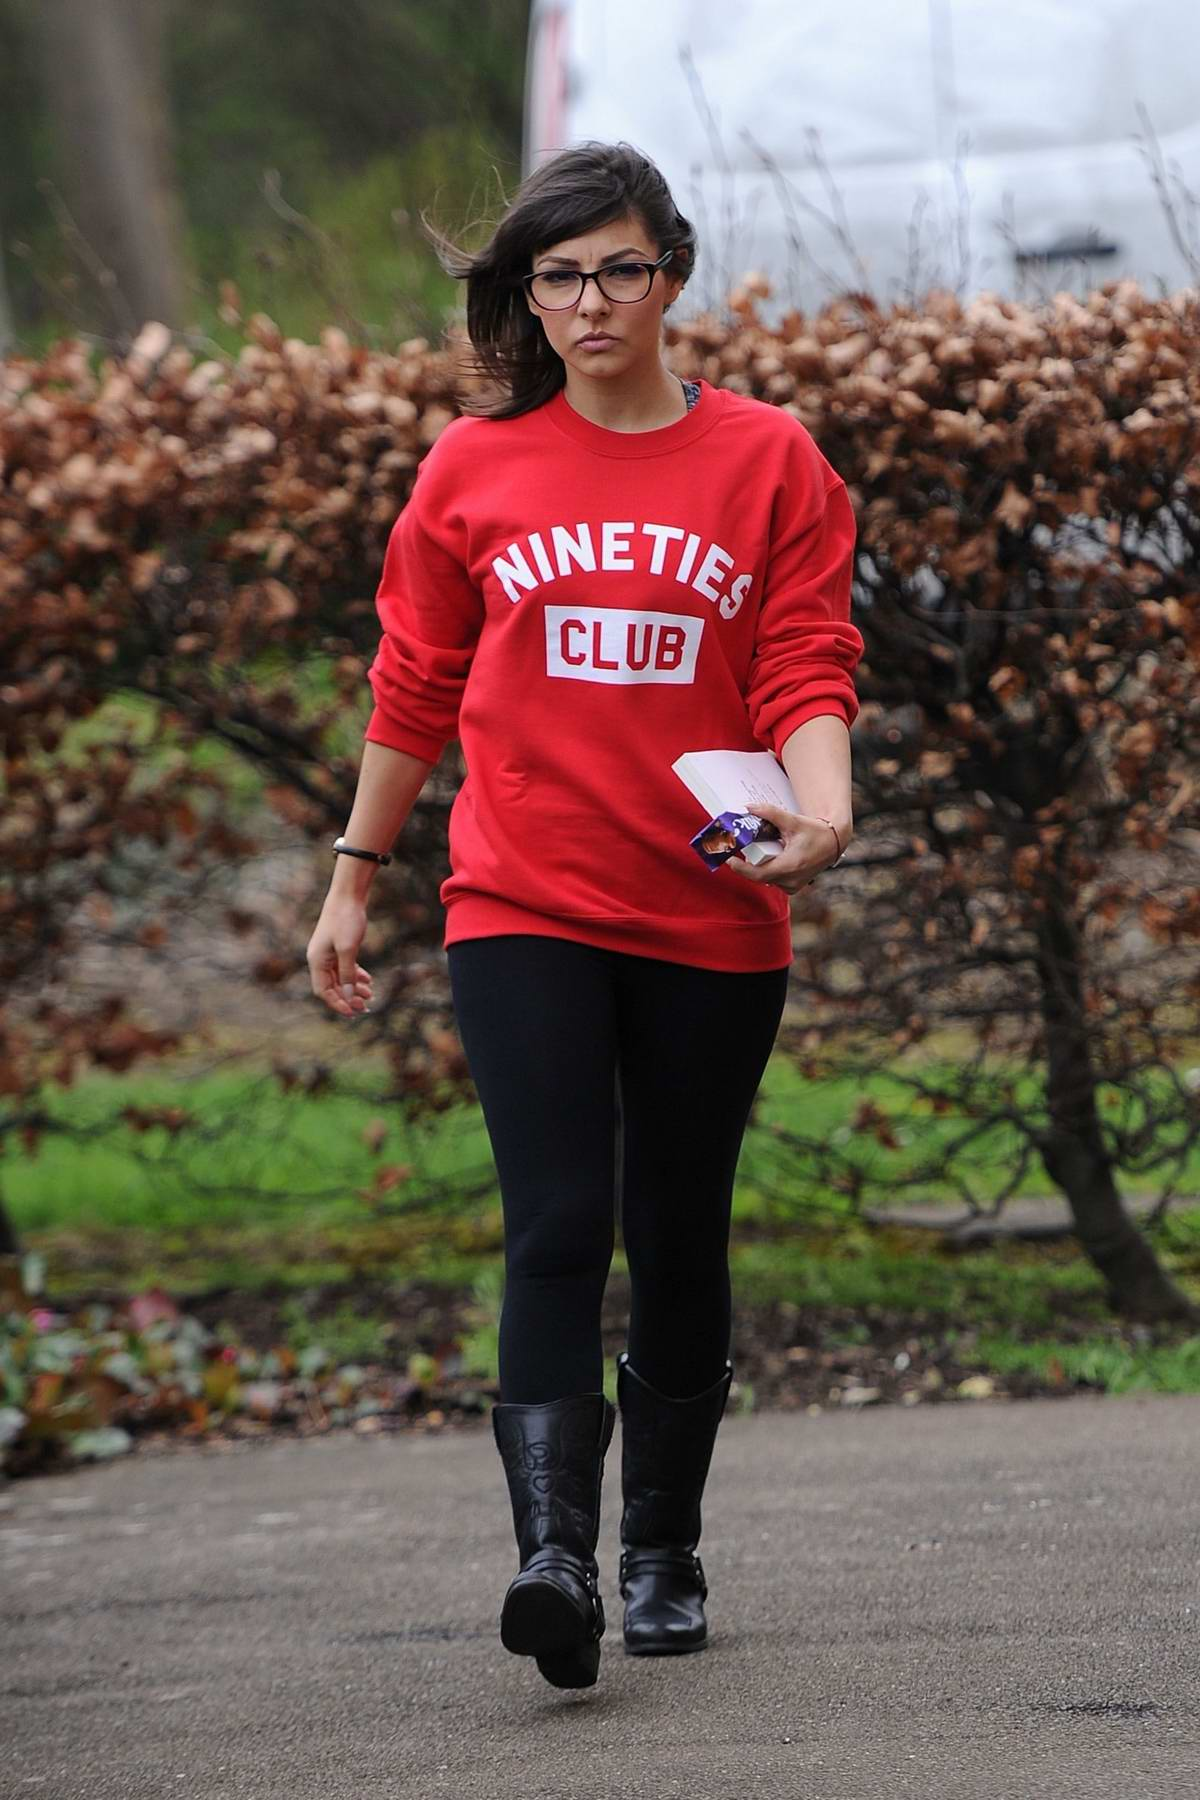 Roxanne Pallett spotted wearing a red 'Nineties Club' sweatshirt while out in Yorkshire, UK